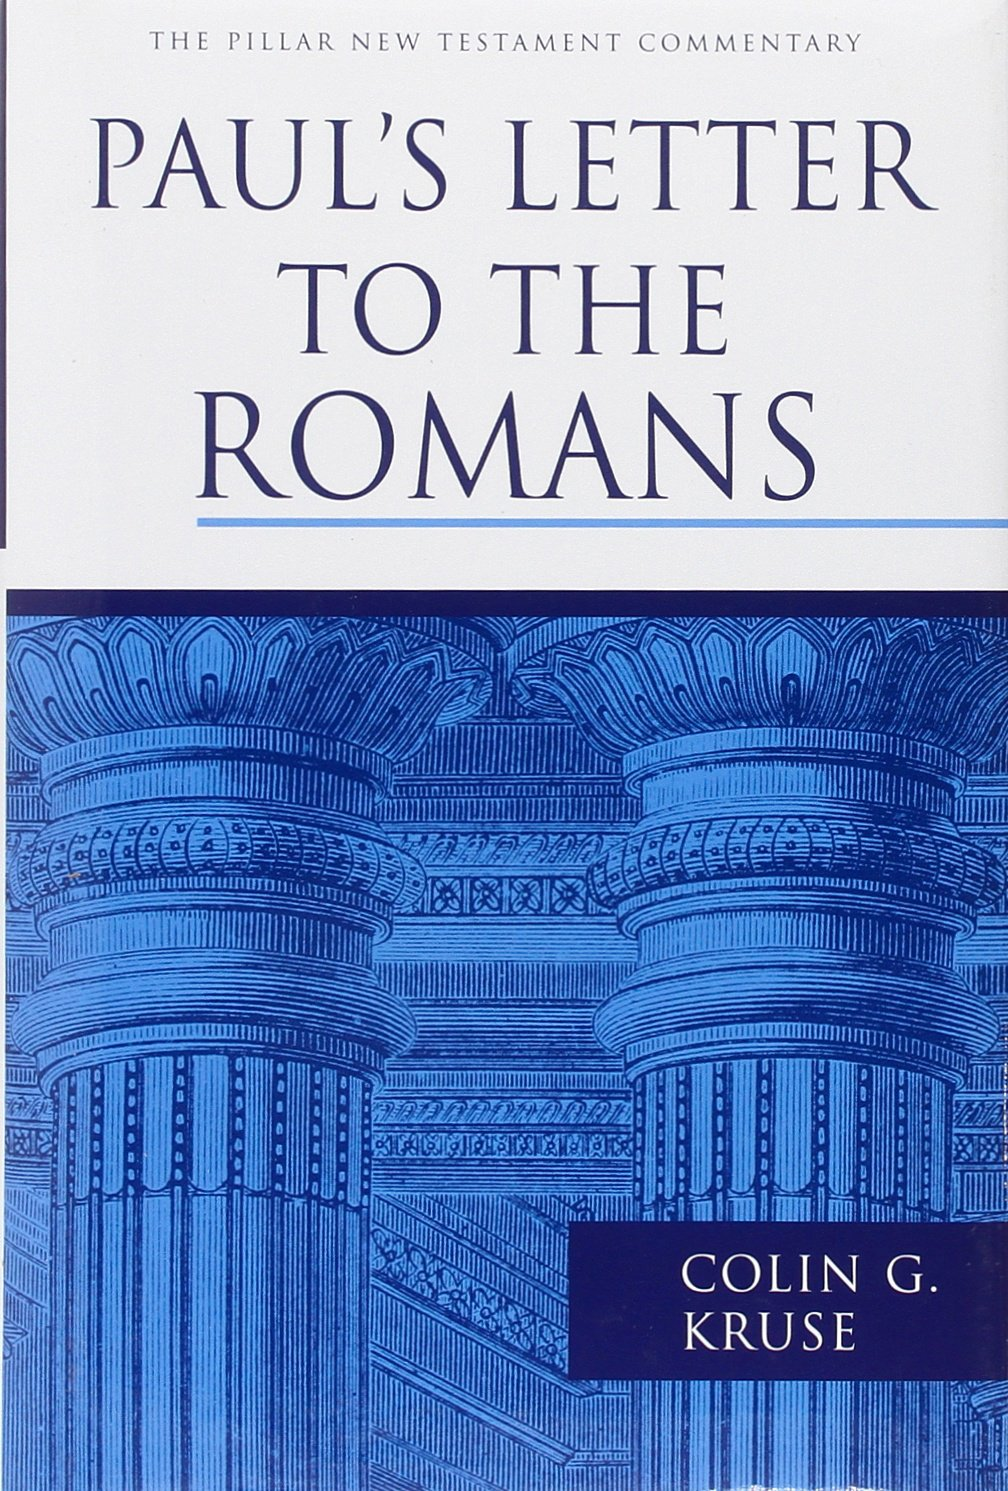 Pauls Letter To The Romans Pillar New Testament Commentary Series 8 Block Diagram Colin G Kruse 9781844745821 Books